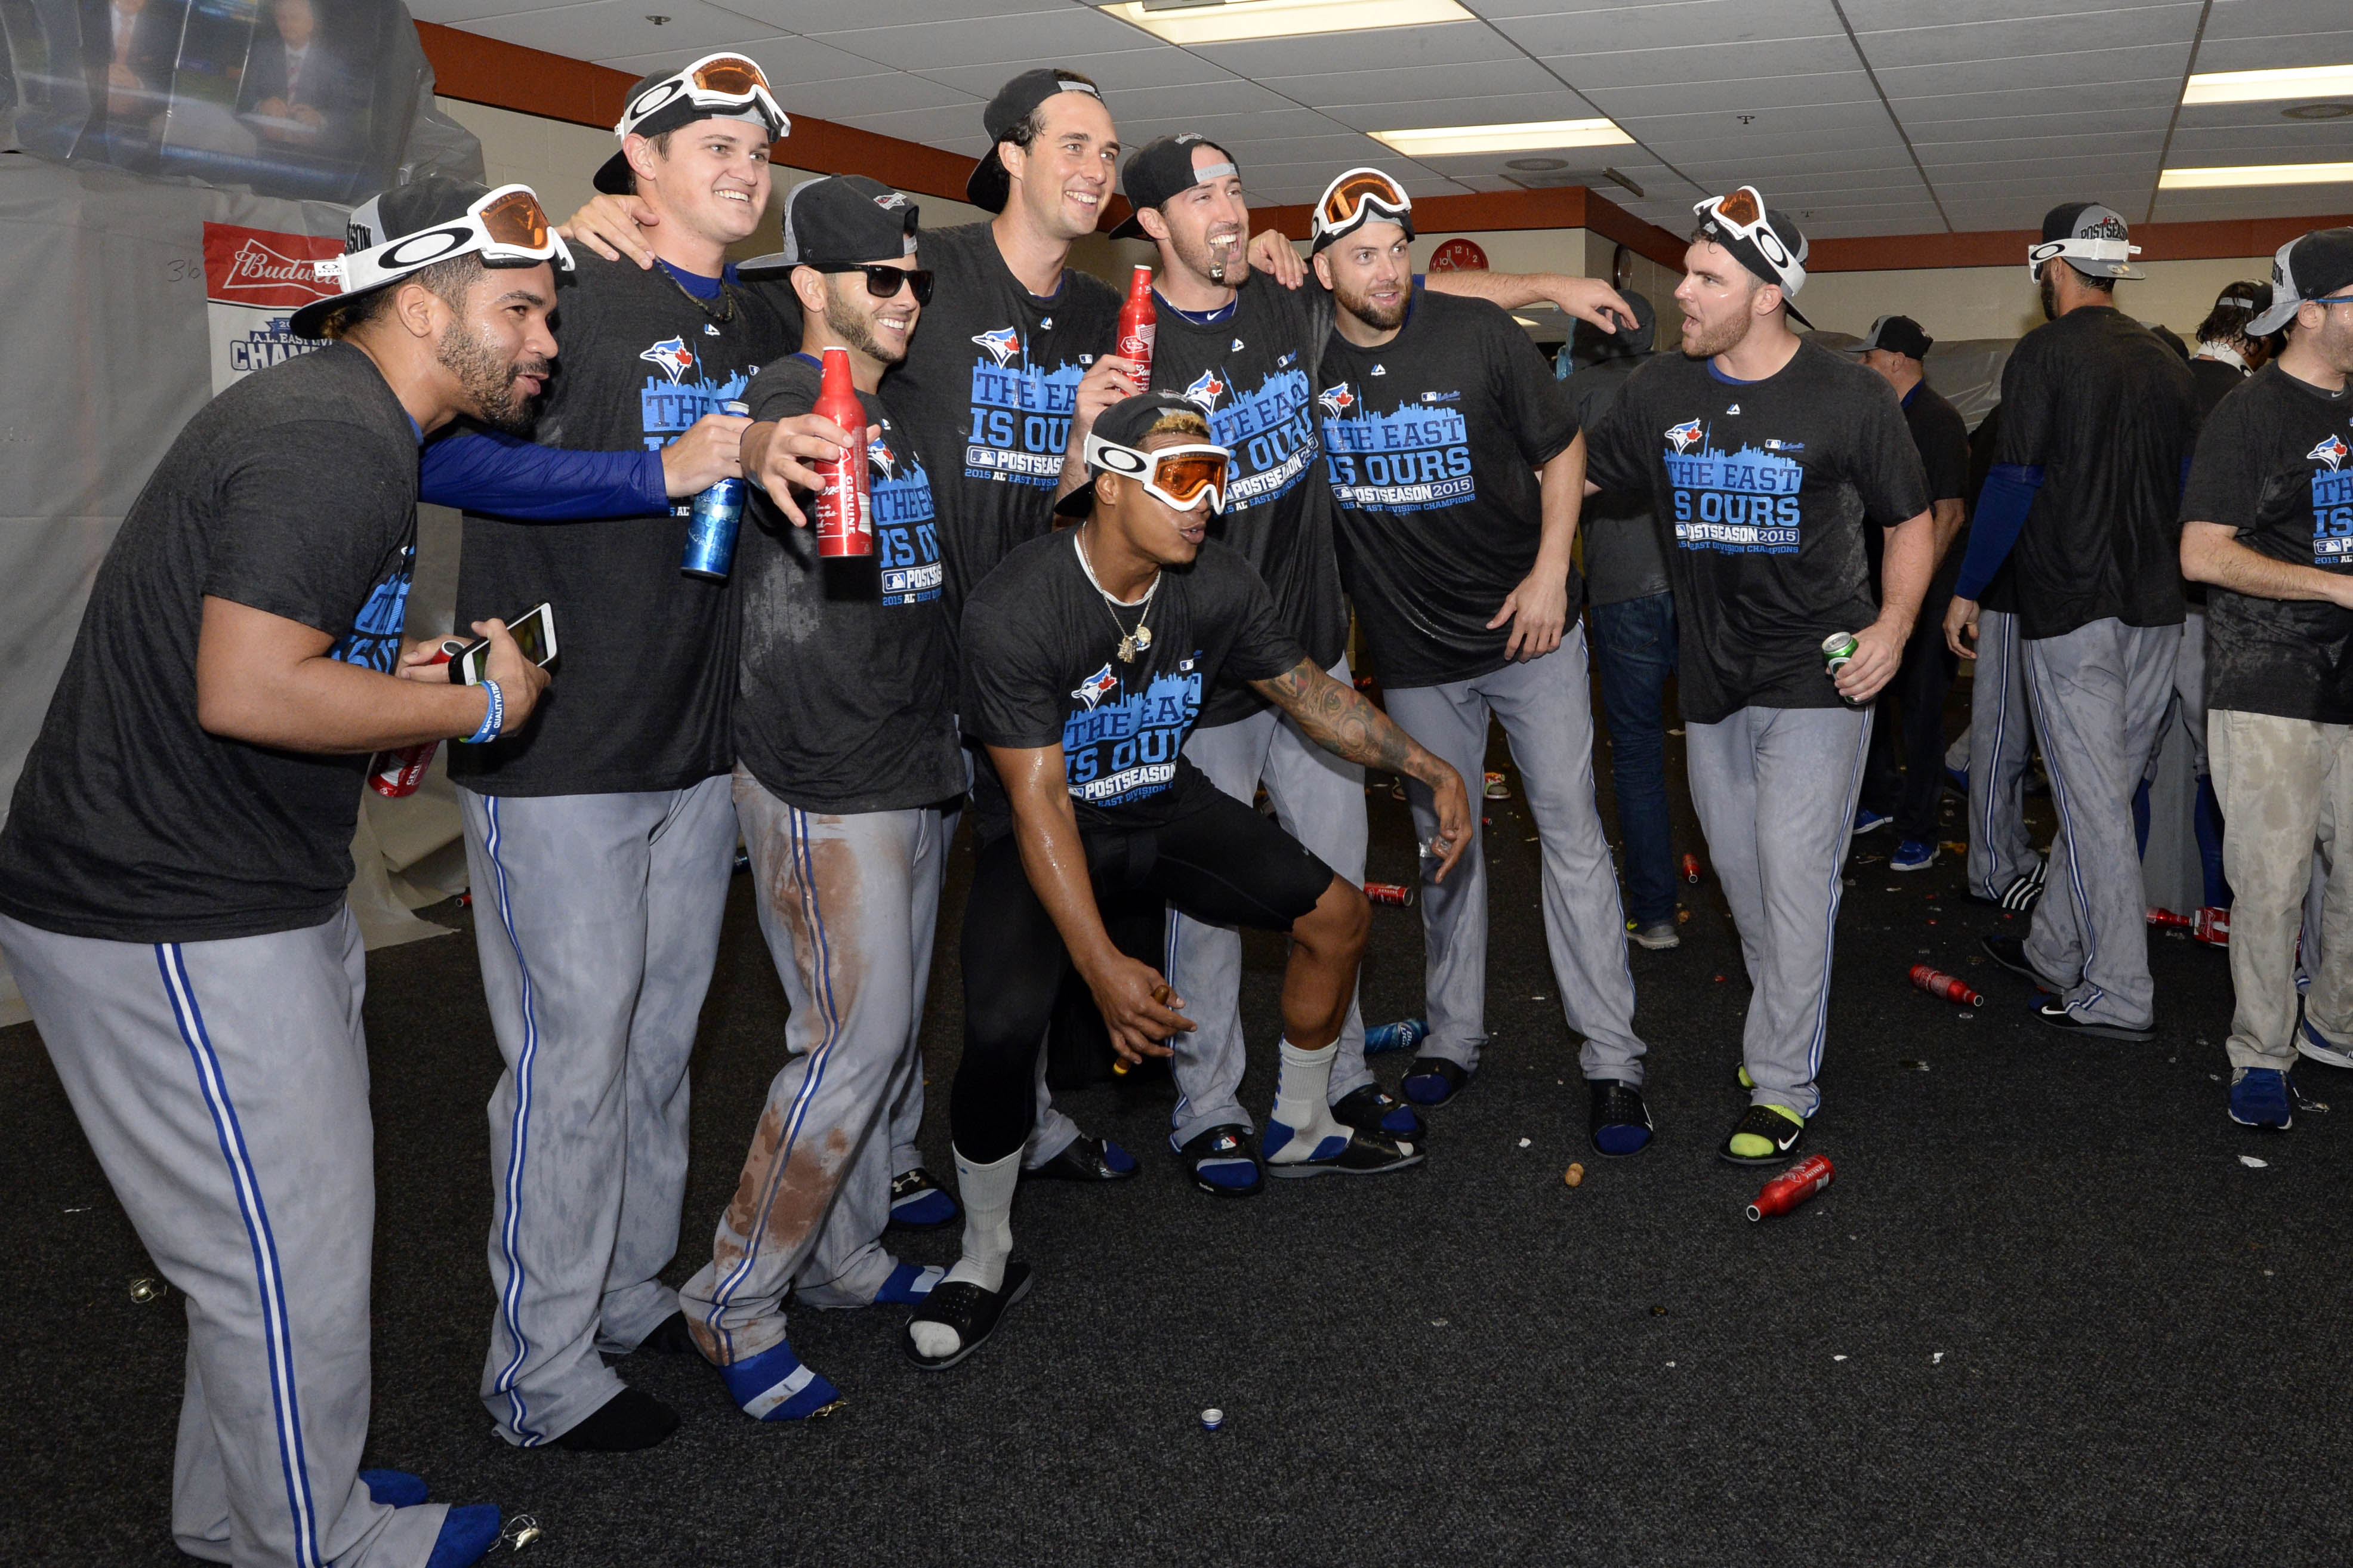 The Blue Jays celebrate winning the A.L. East division.